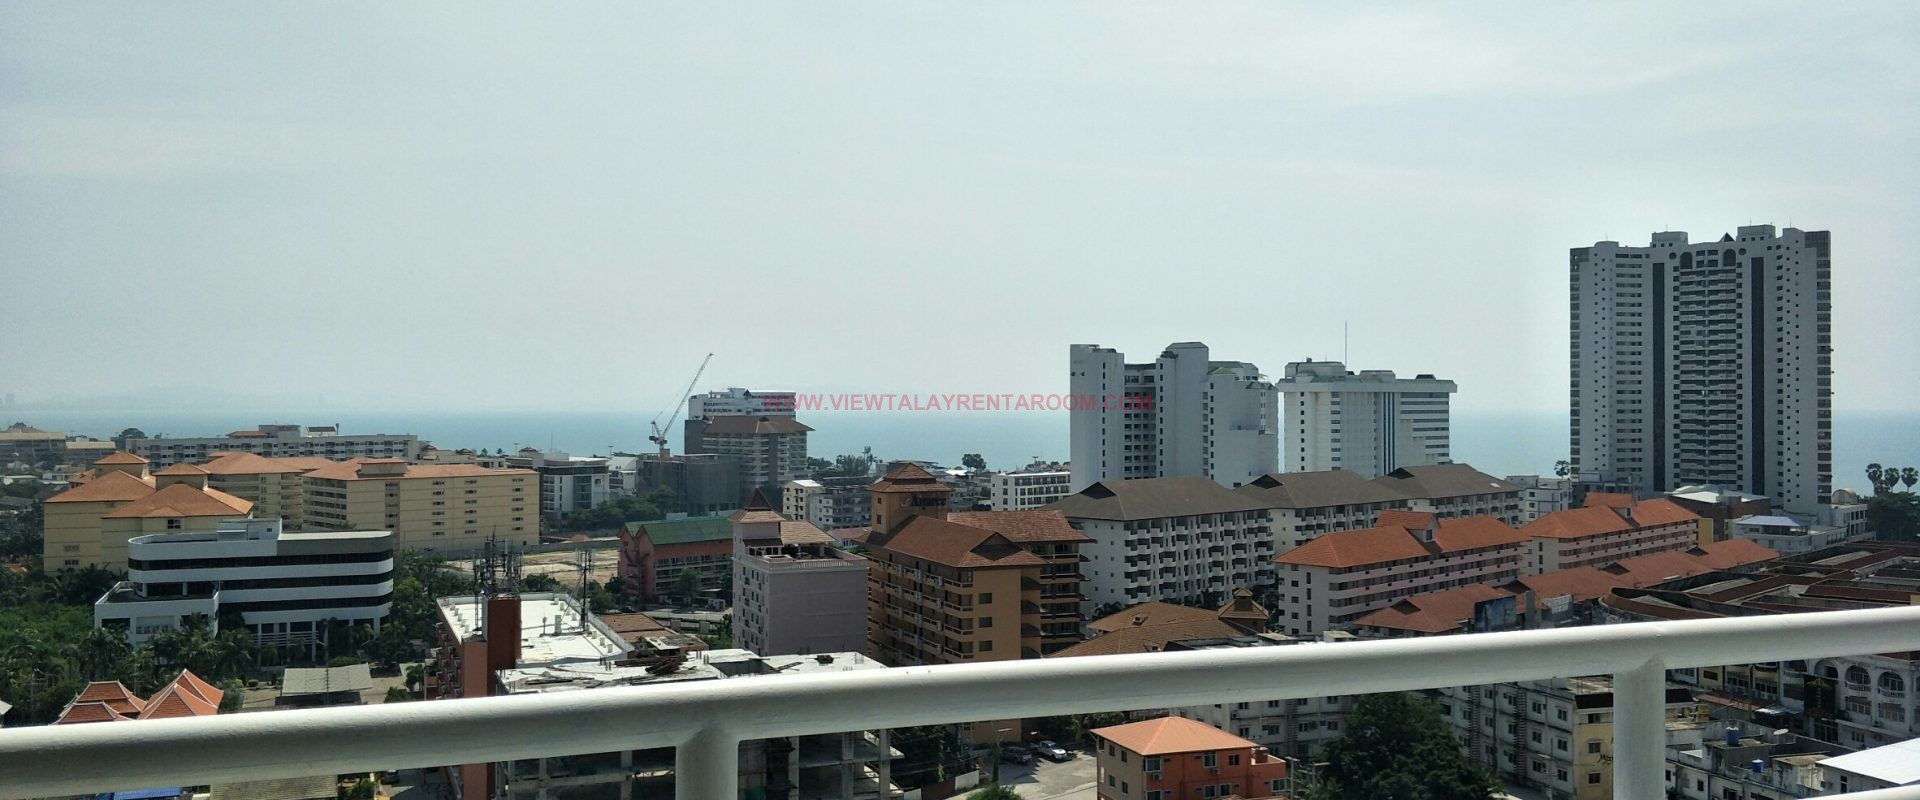 ID83 : View talay 2A .